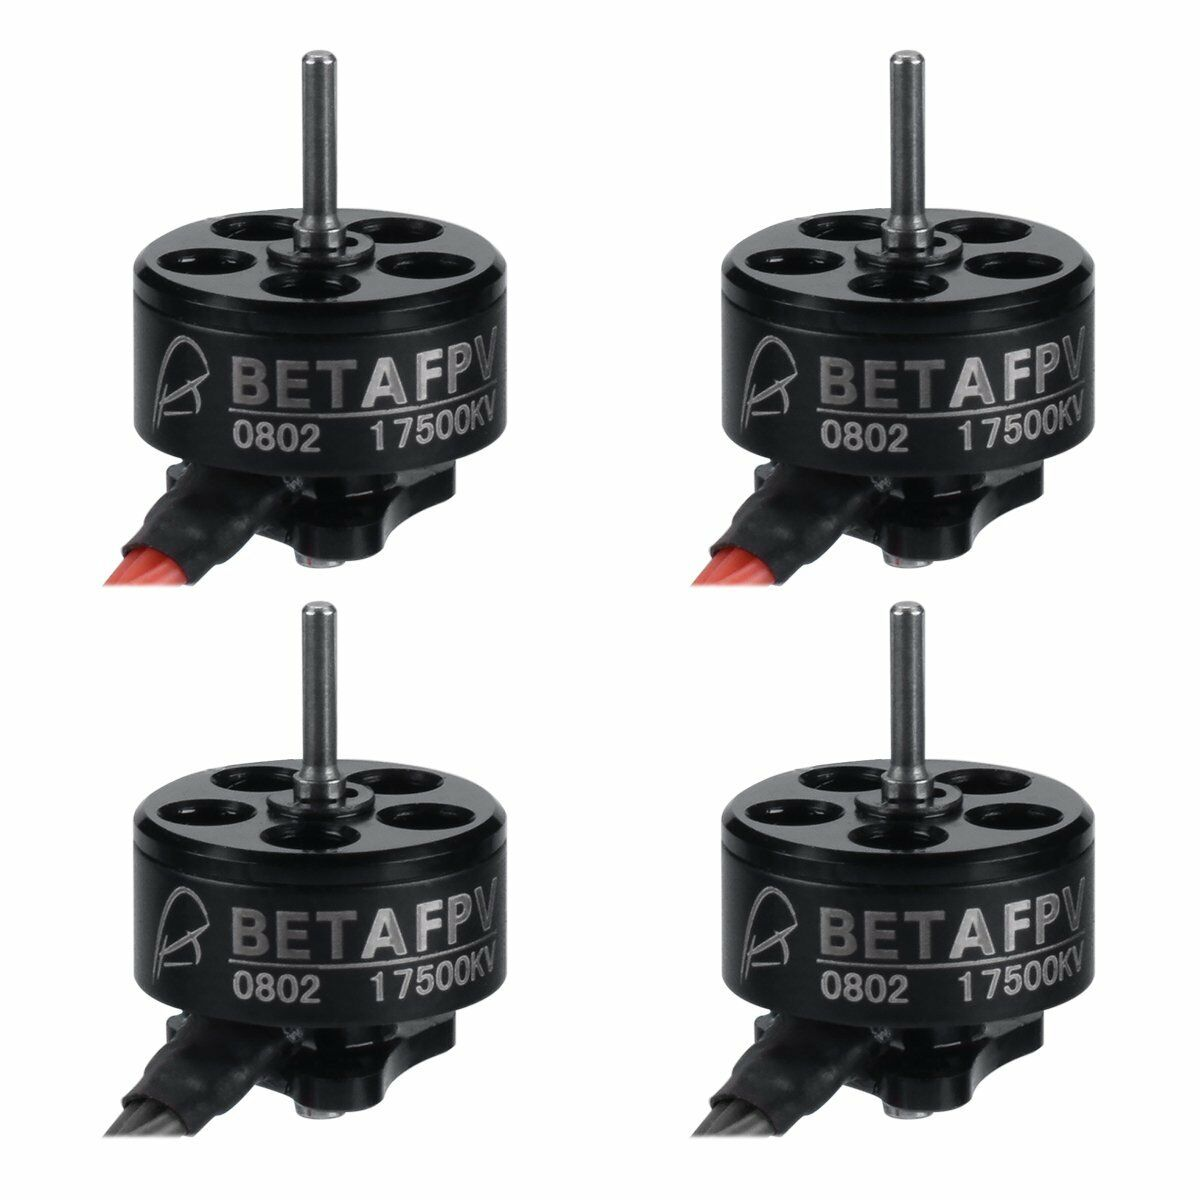 BetaFPV 0802 17500kv Brushless Brushless Brushless Motors set of 4 6ef927